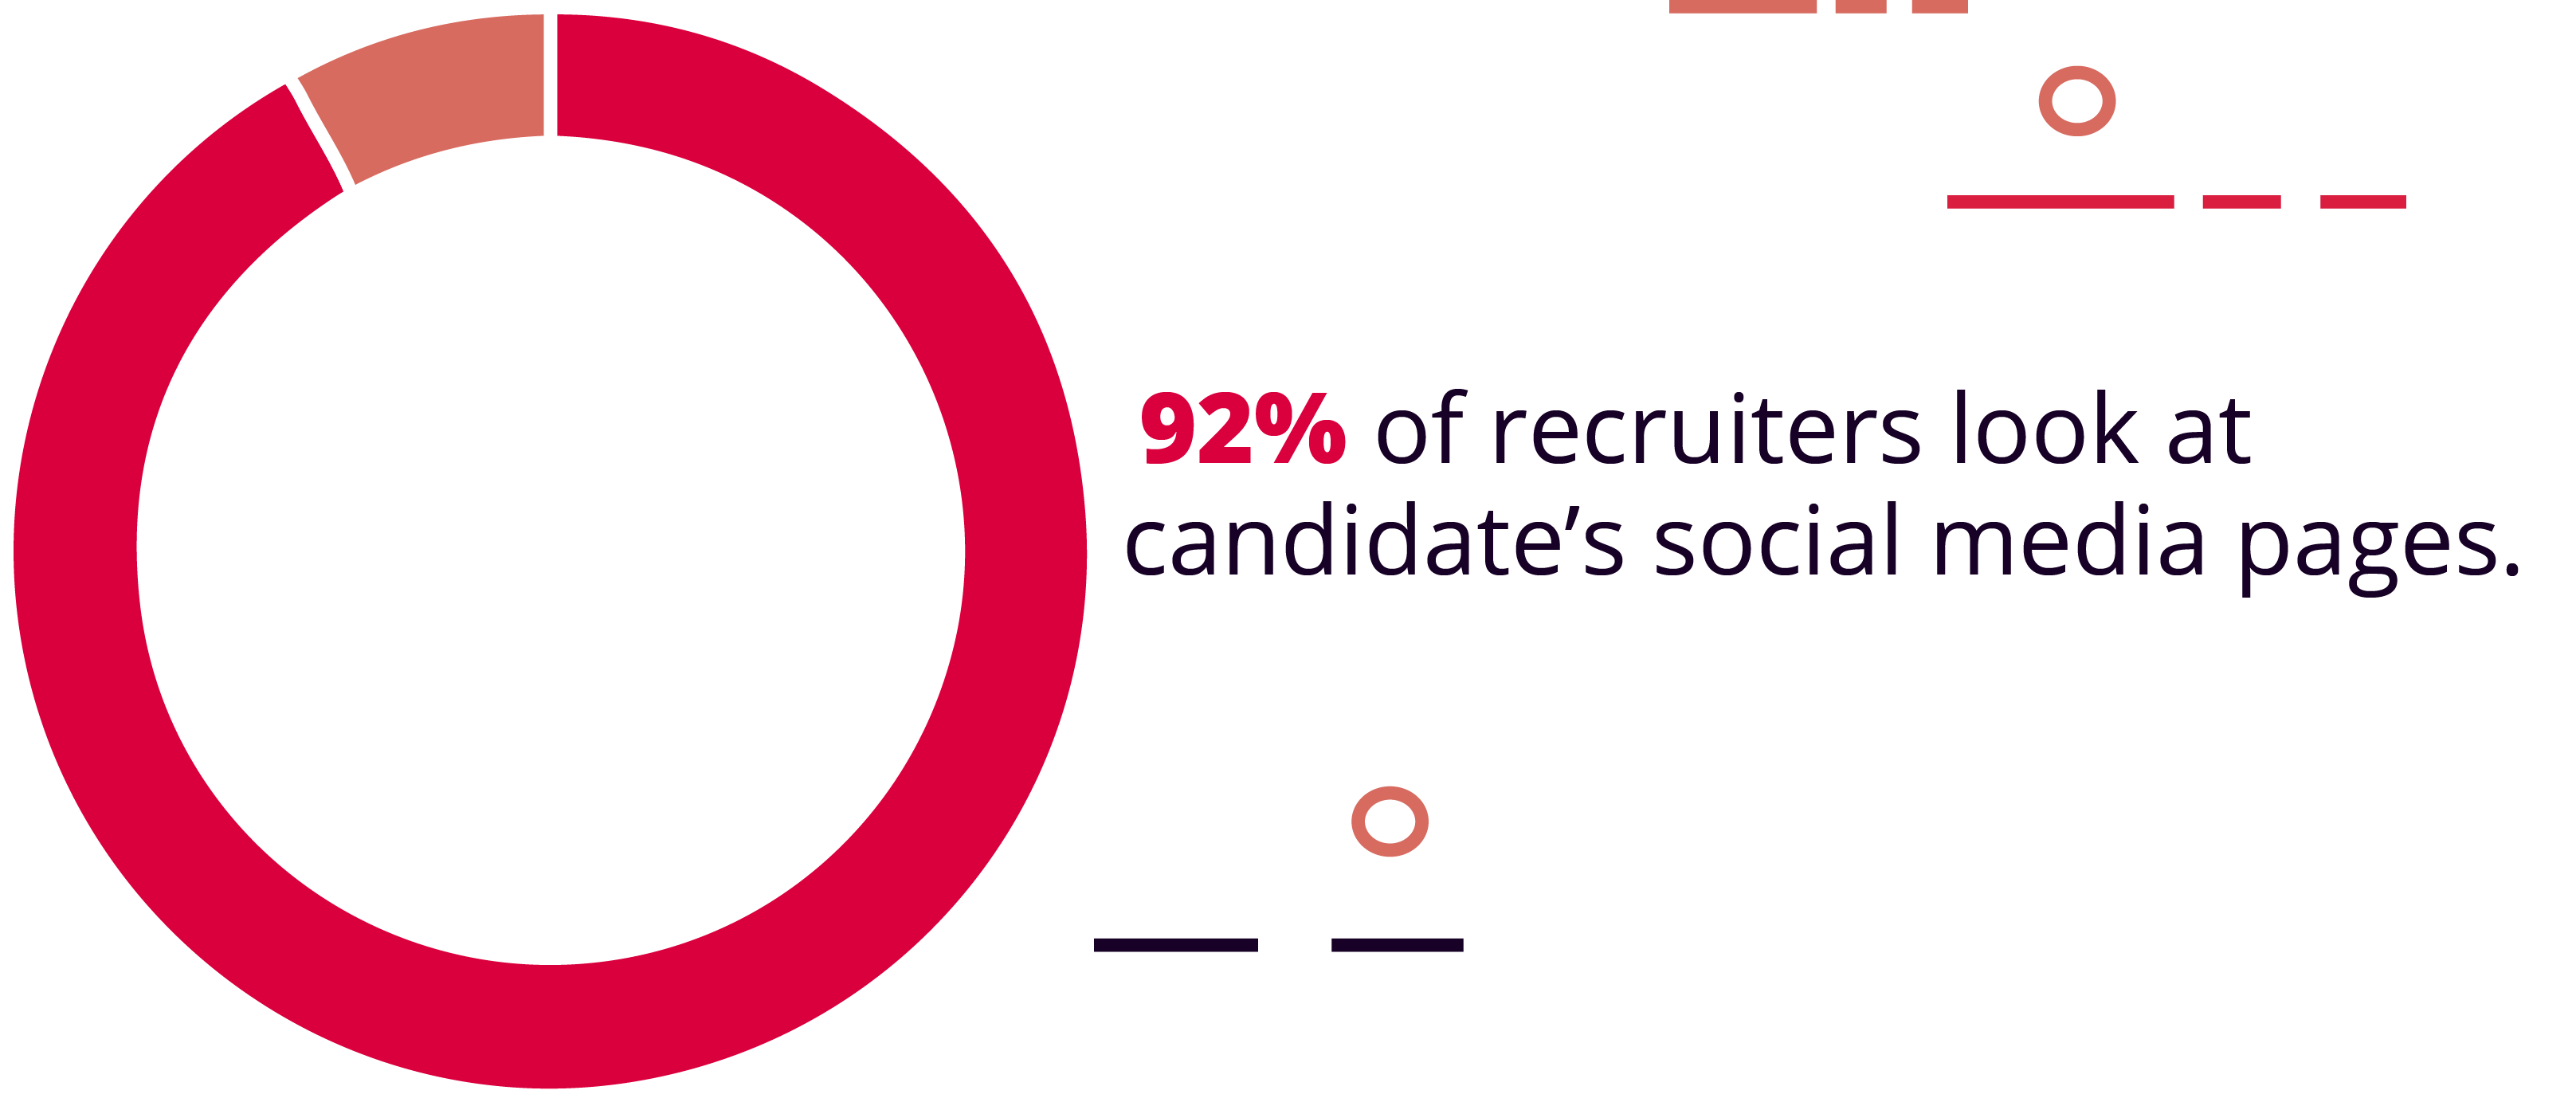 92% of recruiters look at candidate's social media pages